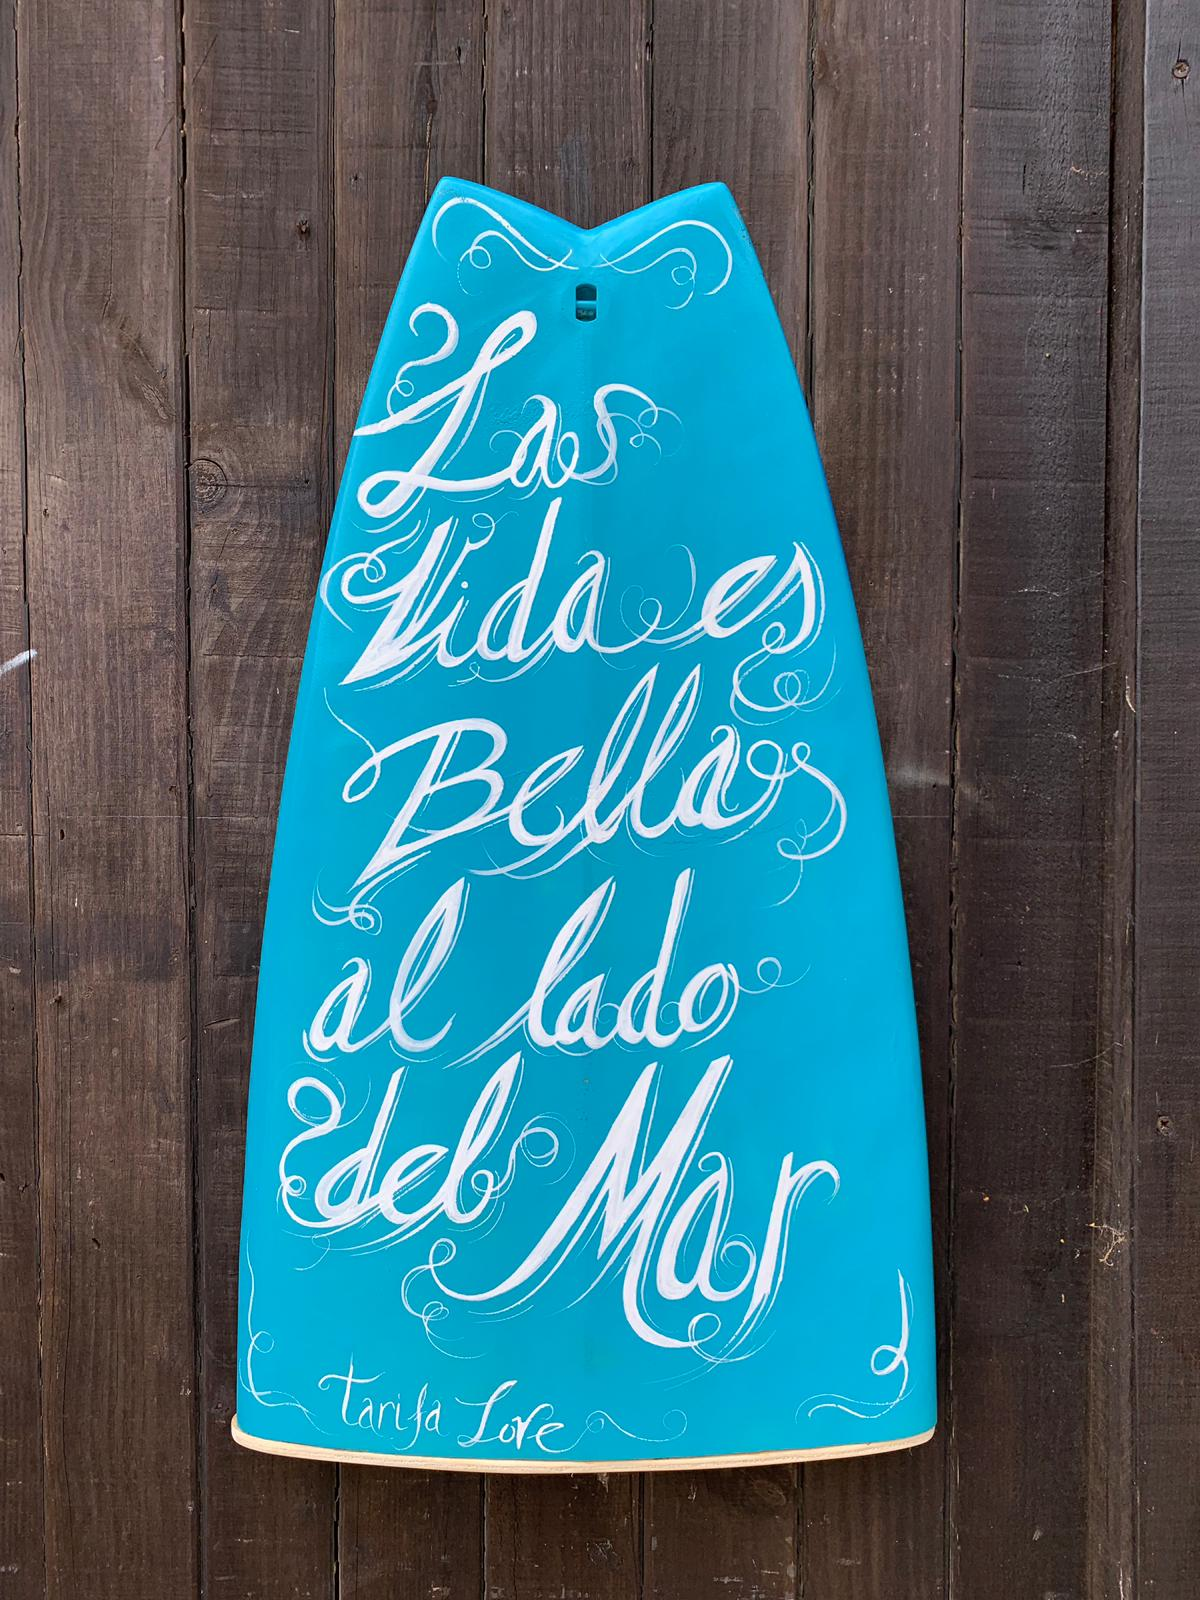 OFERTAS TABLA SURF AZUL RECICLADA TARIFA PLAYA DECORACIÓN